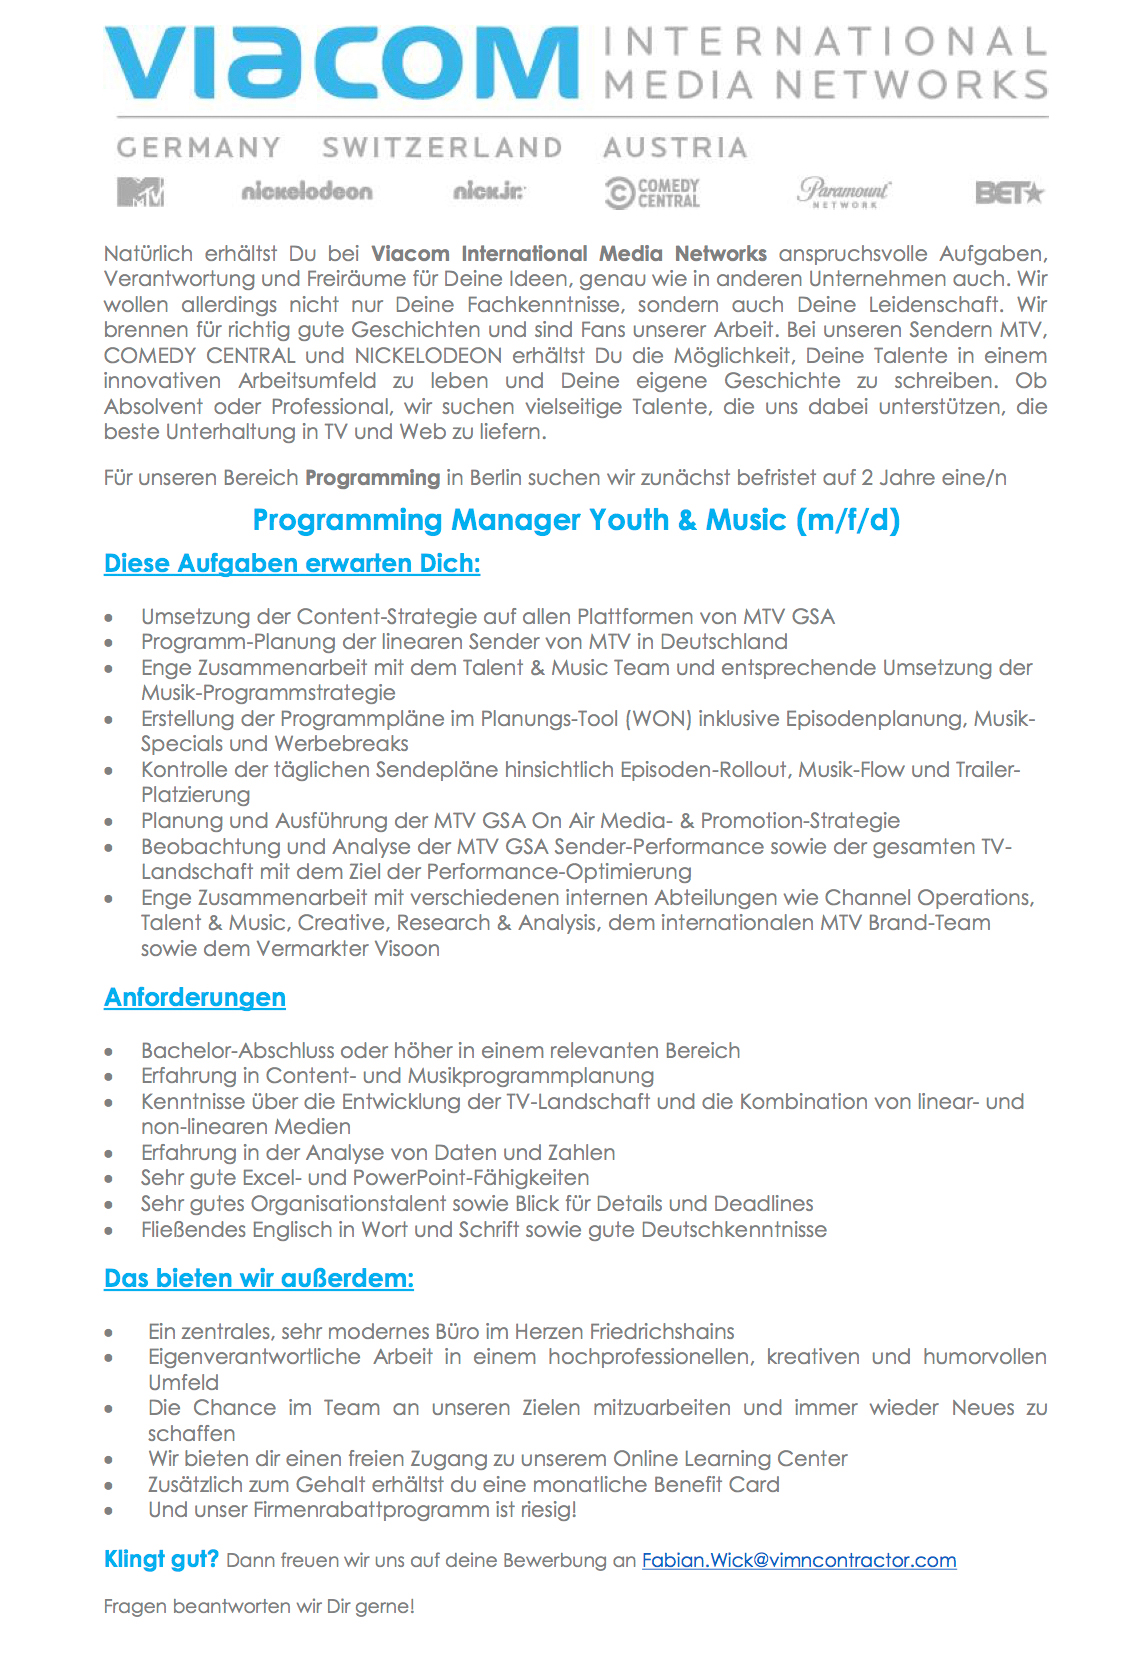 Programming Manager Youth & Music (m/f/d)